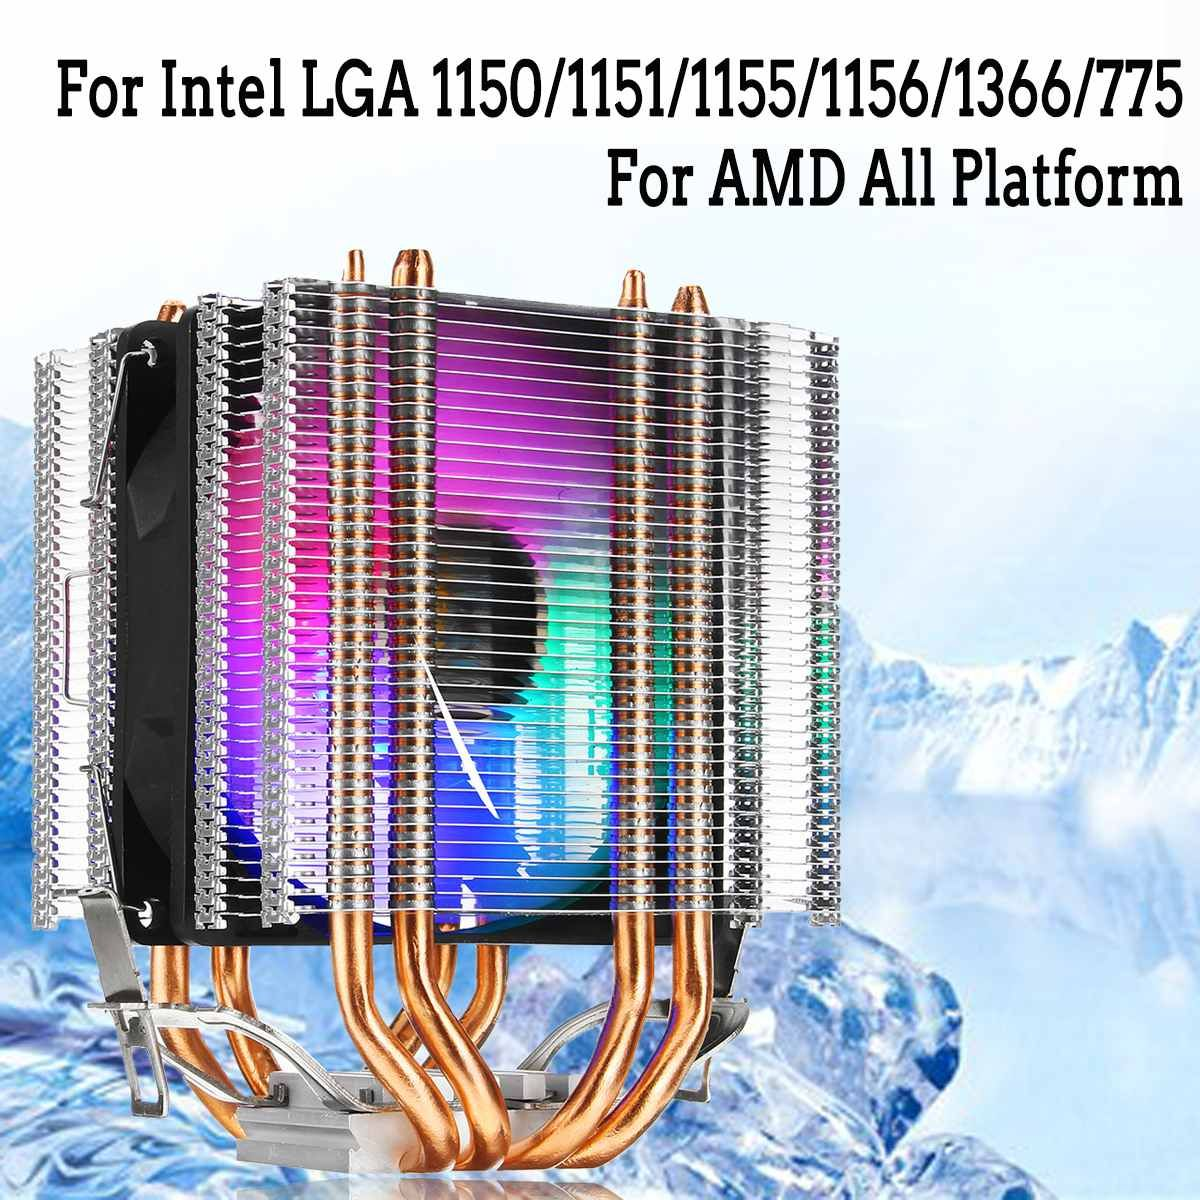 for Intel LAG 1155 1156 775 for AMD Socket AM3/AM2 RGB LED CPU Cooler Fan 4 Heatpipe Dual Tower 12V Cooler Cooling Fan Heat Sink